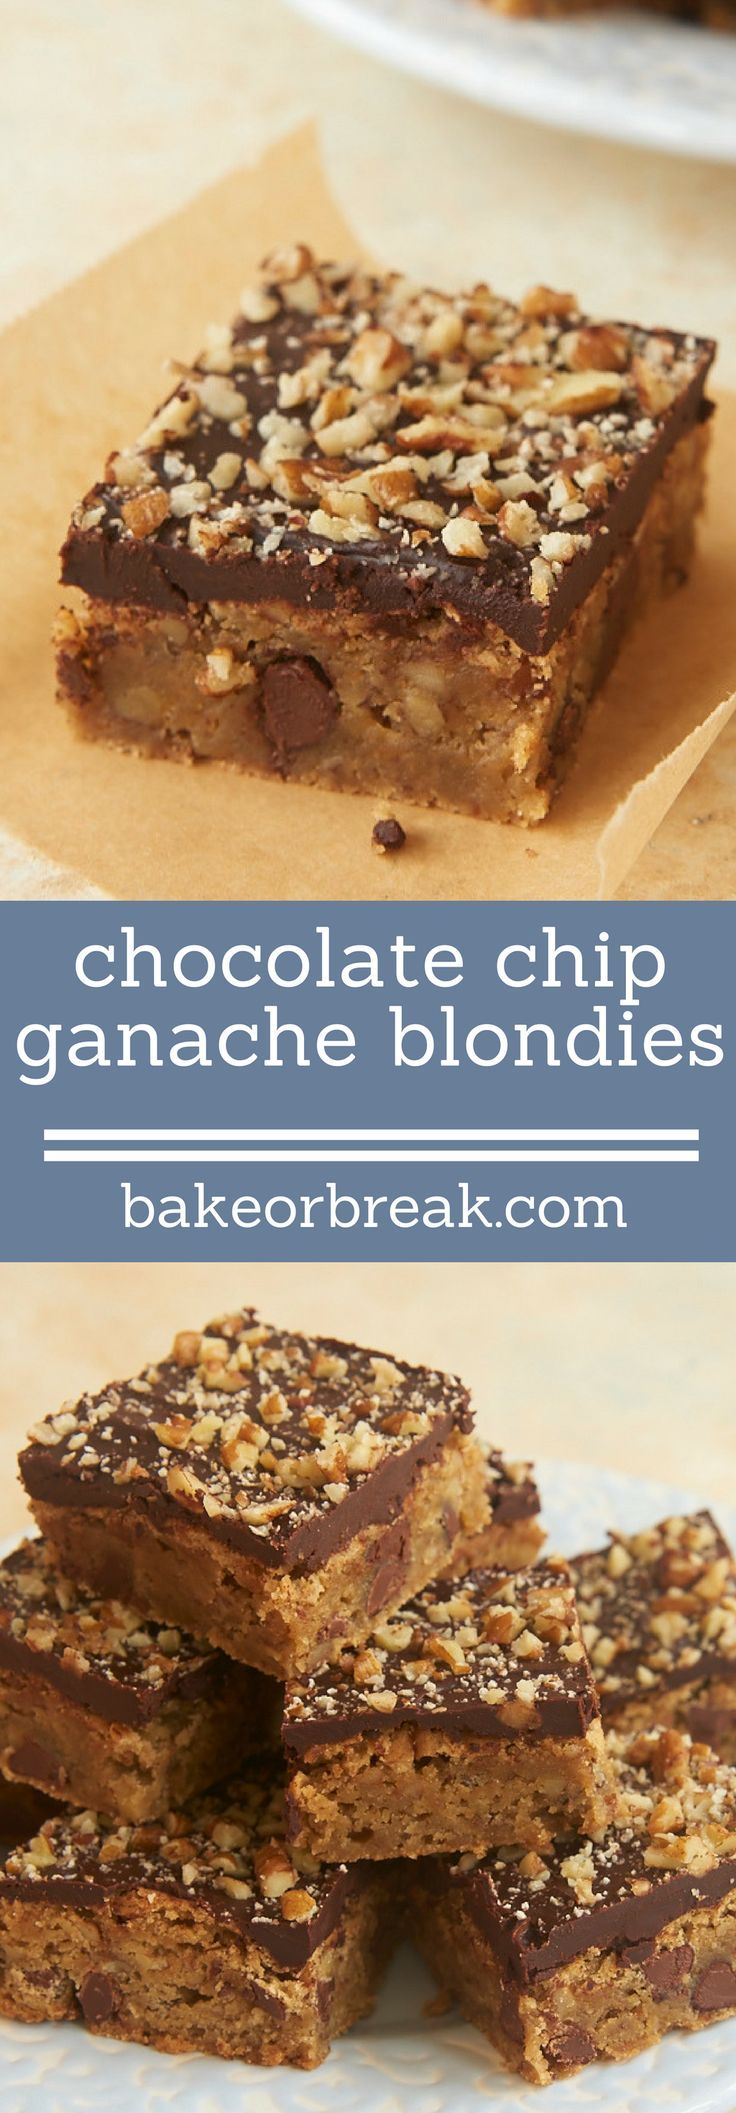 Simple blondies get all dressed up with a rich ganache topping in these Chocolate Chip Ganache Blondies! - Bake or Break